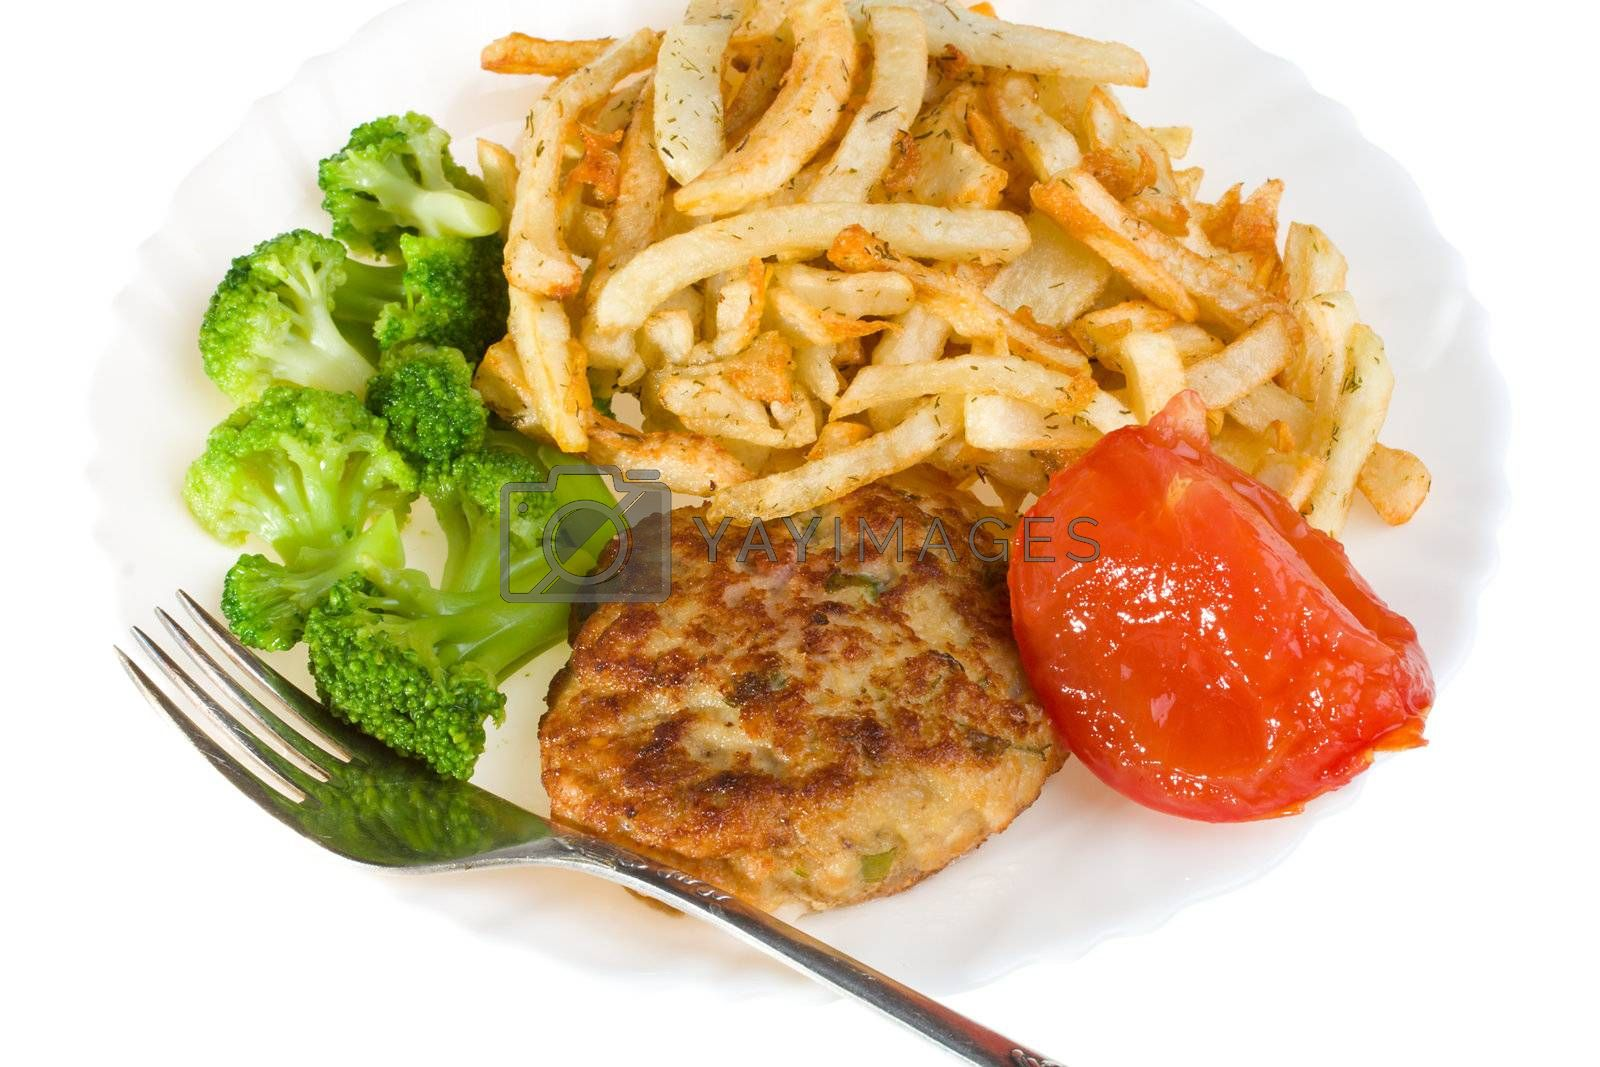 Royalty free image of cutlet with tomato broccoli and potatoes by Alekcey